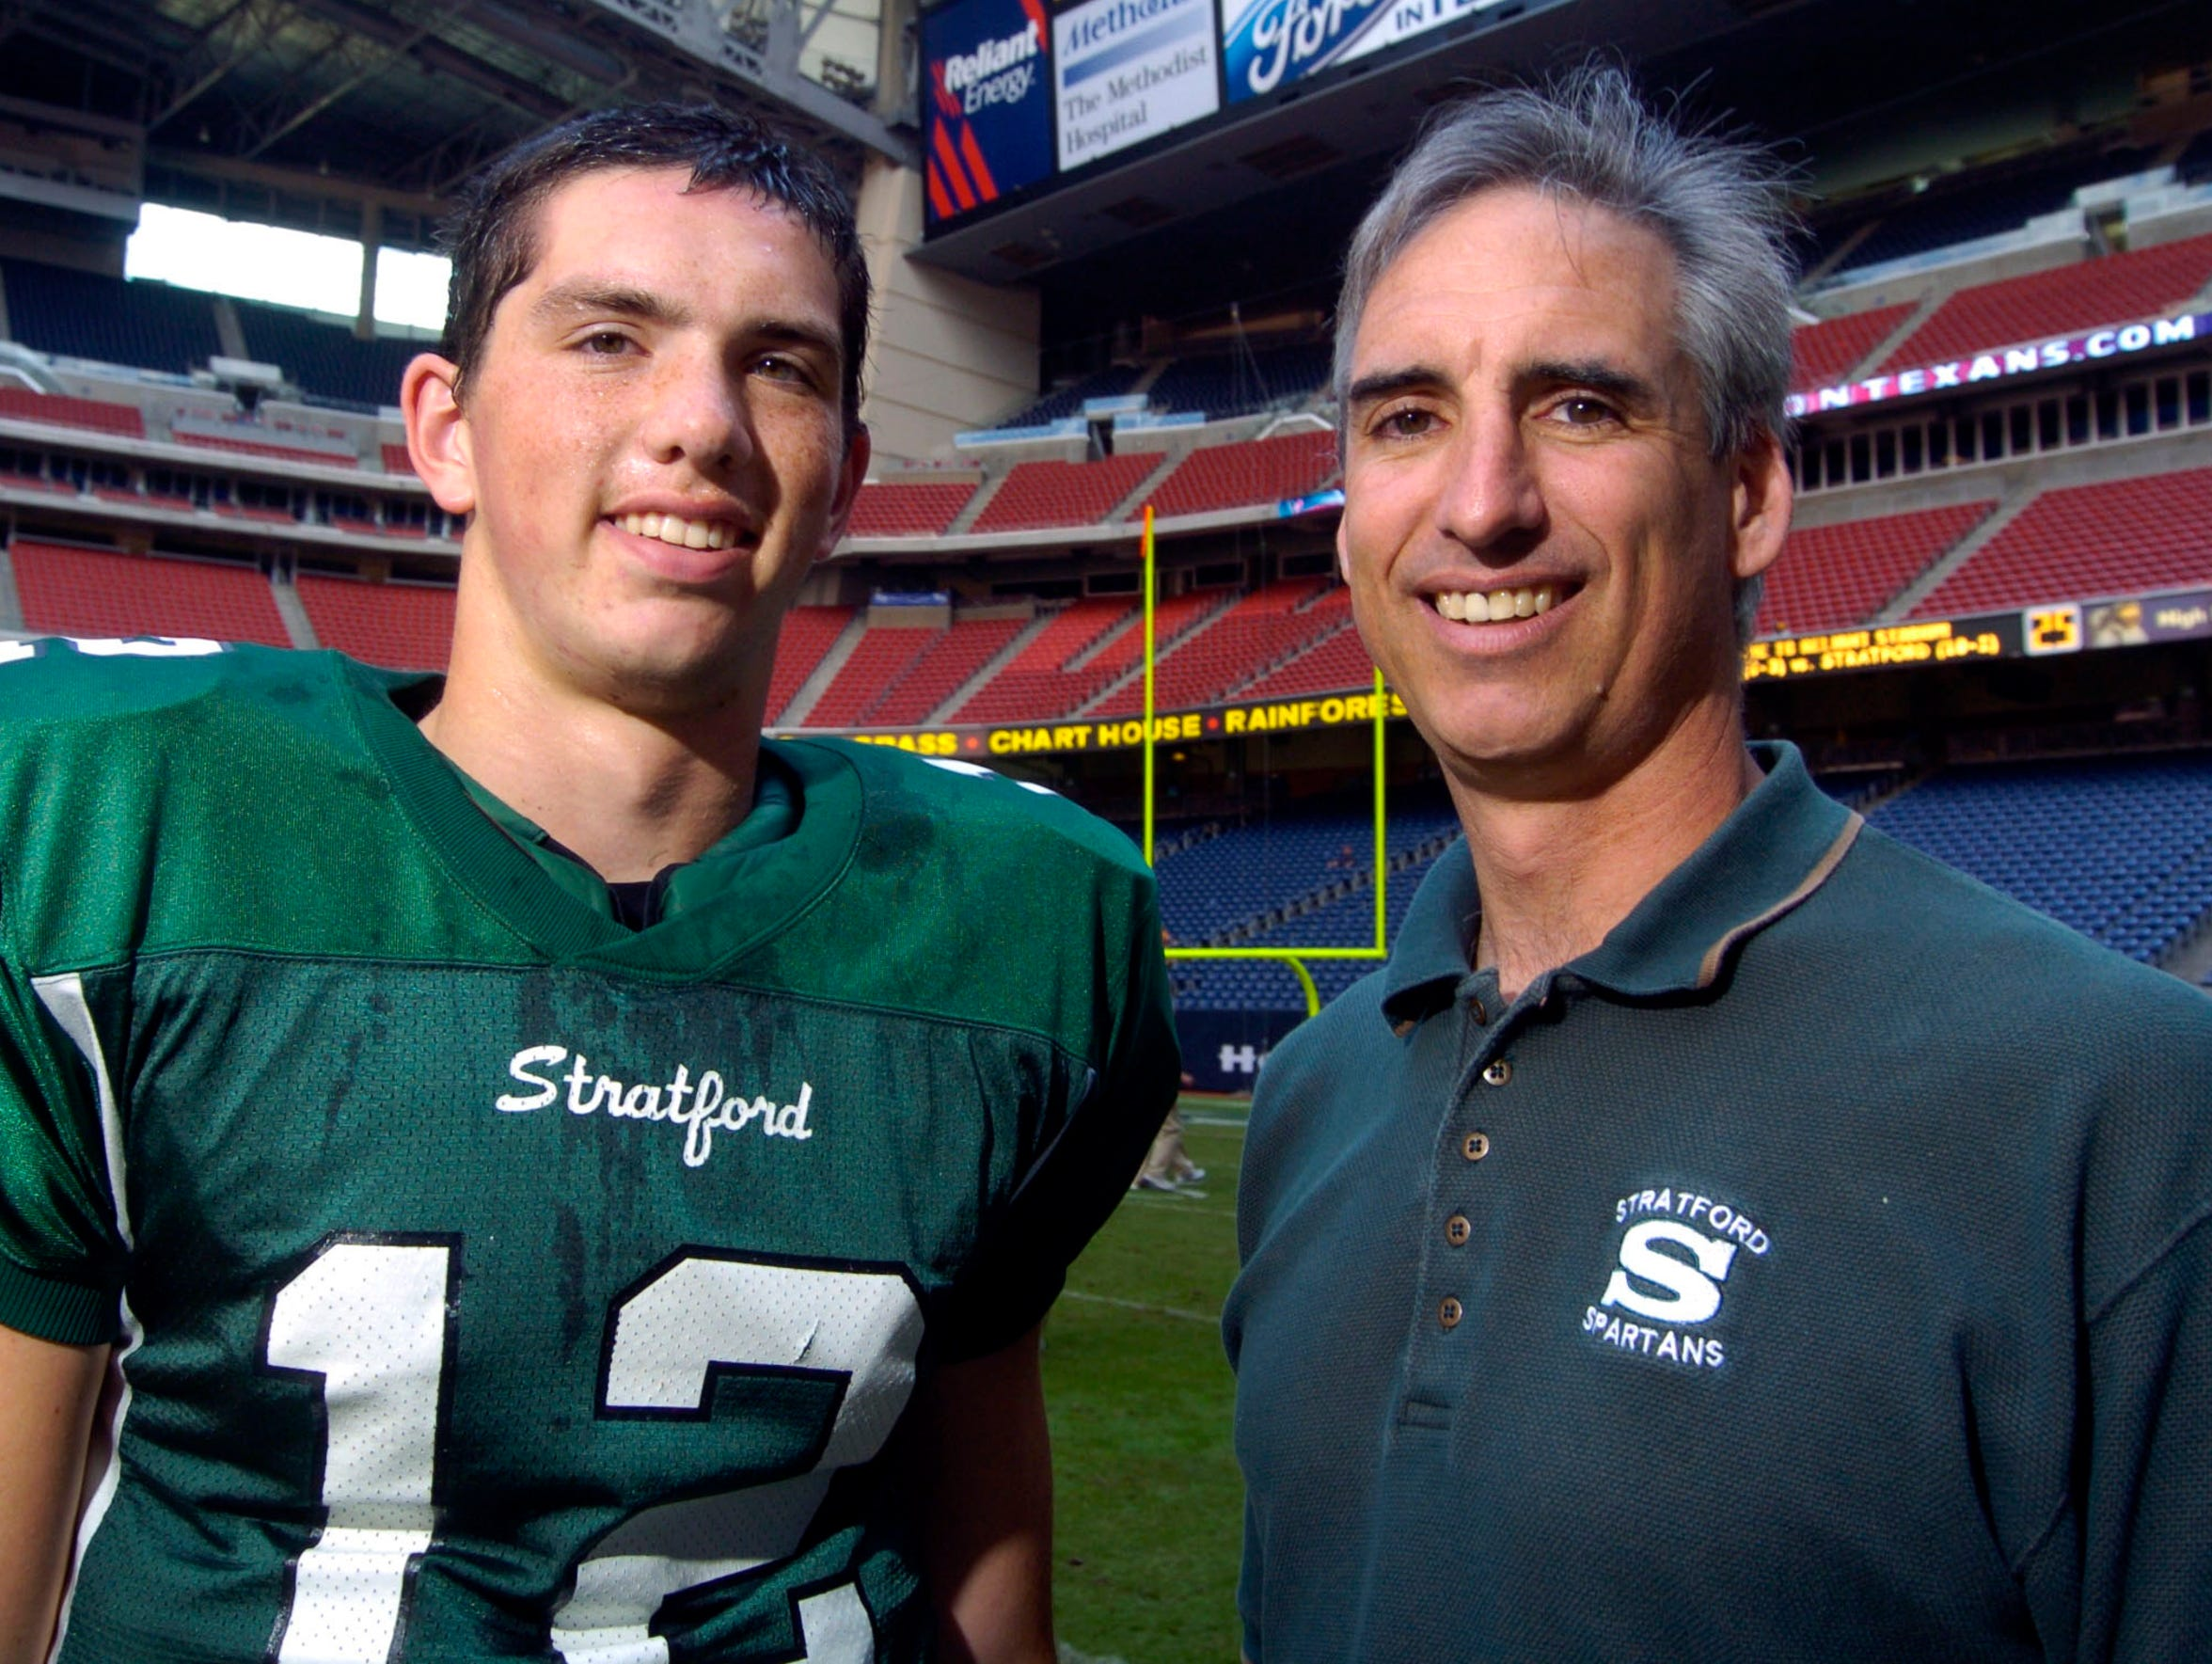 Andrew Luck's first football coach? His dad, who put